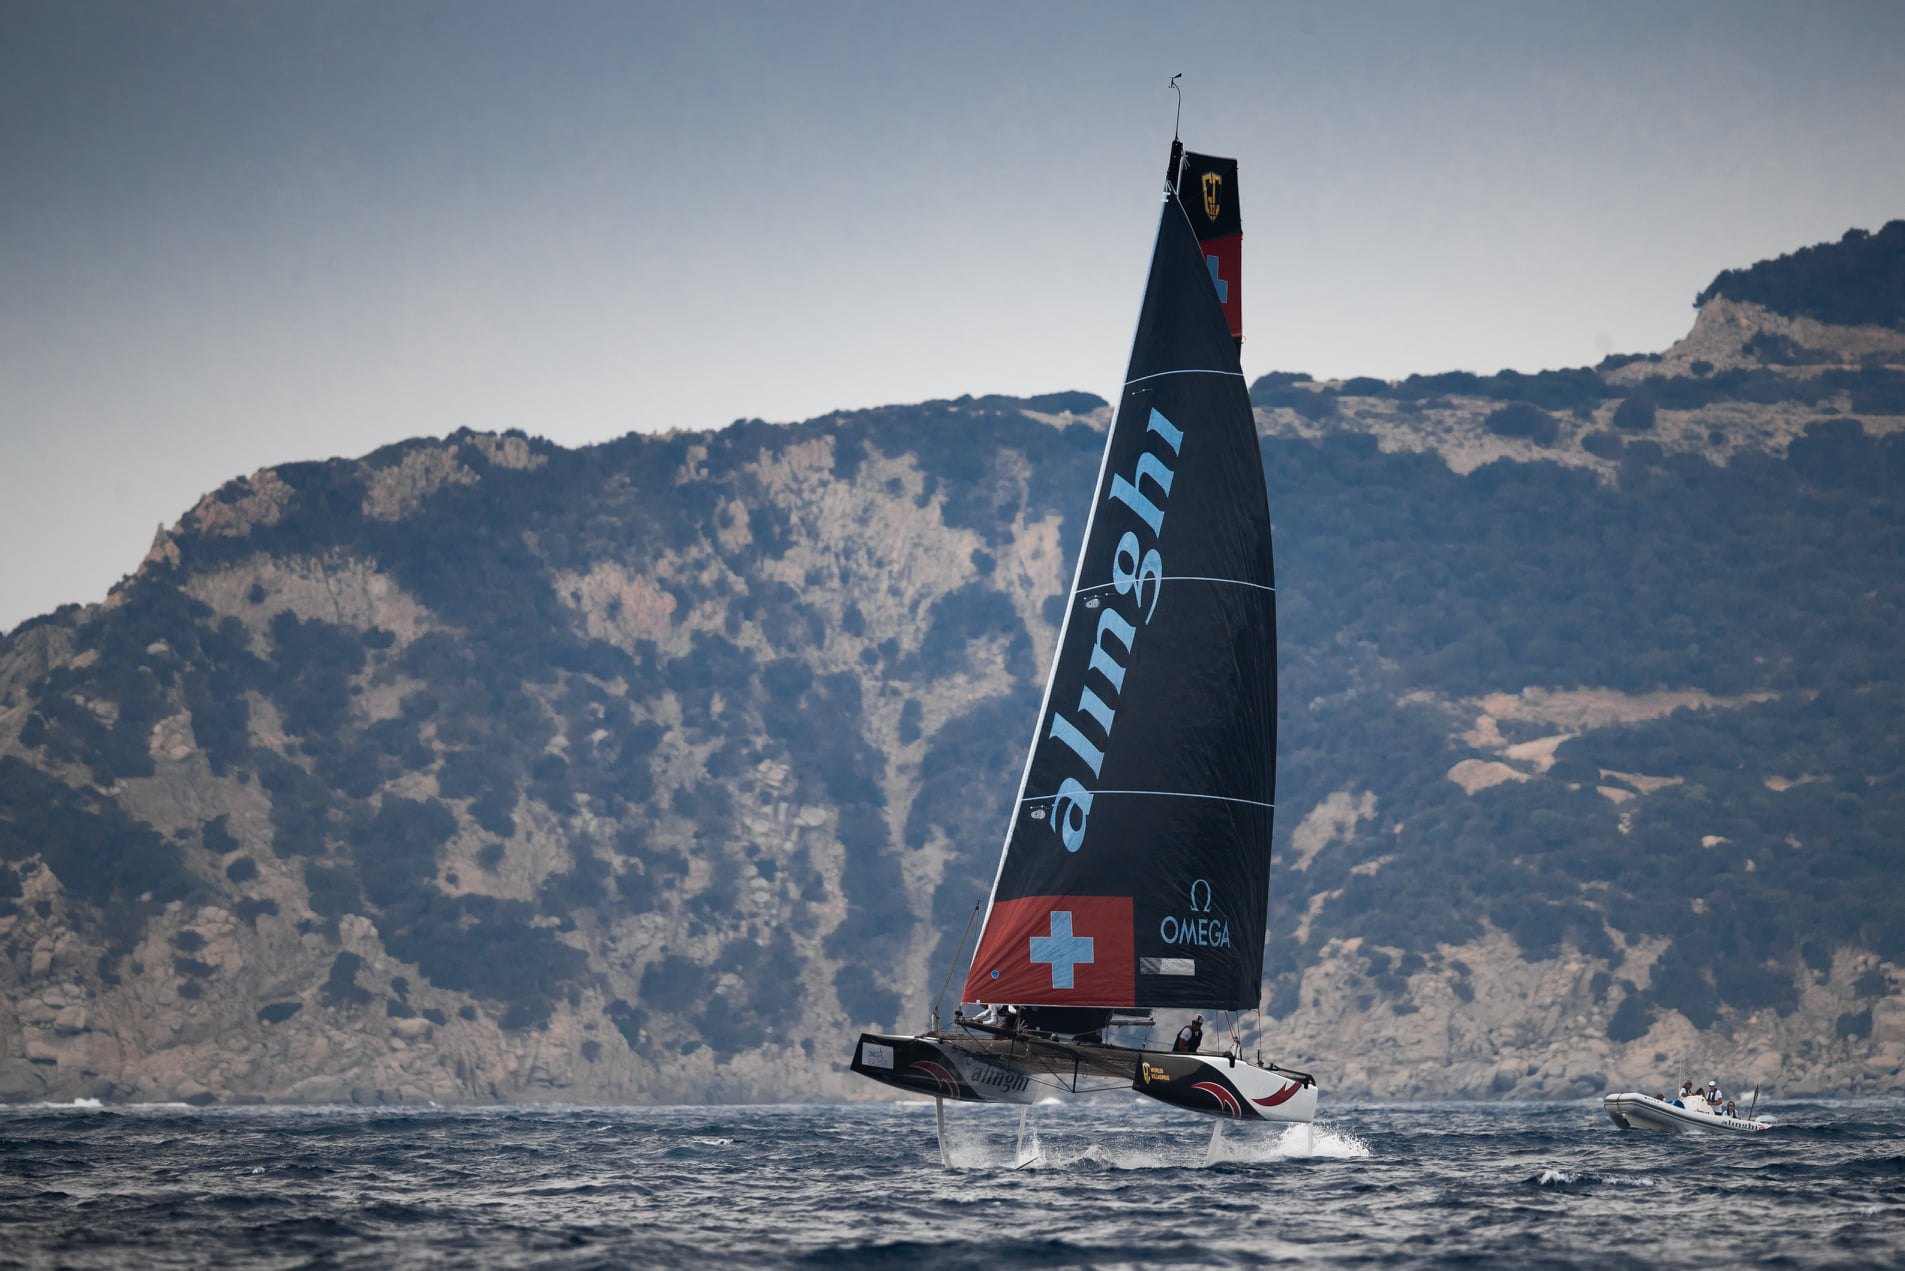 Alinghi foiling downwind with land (mountains) in background.